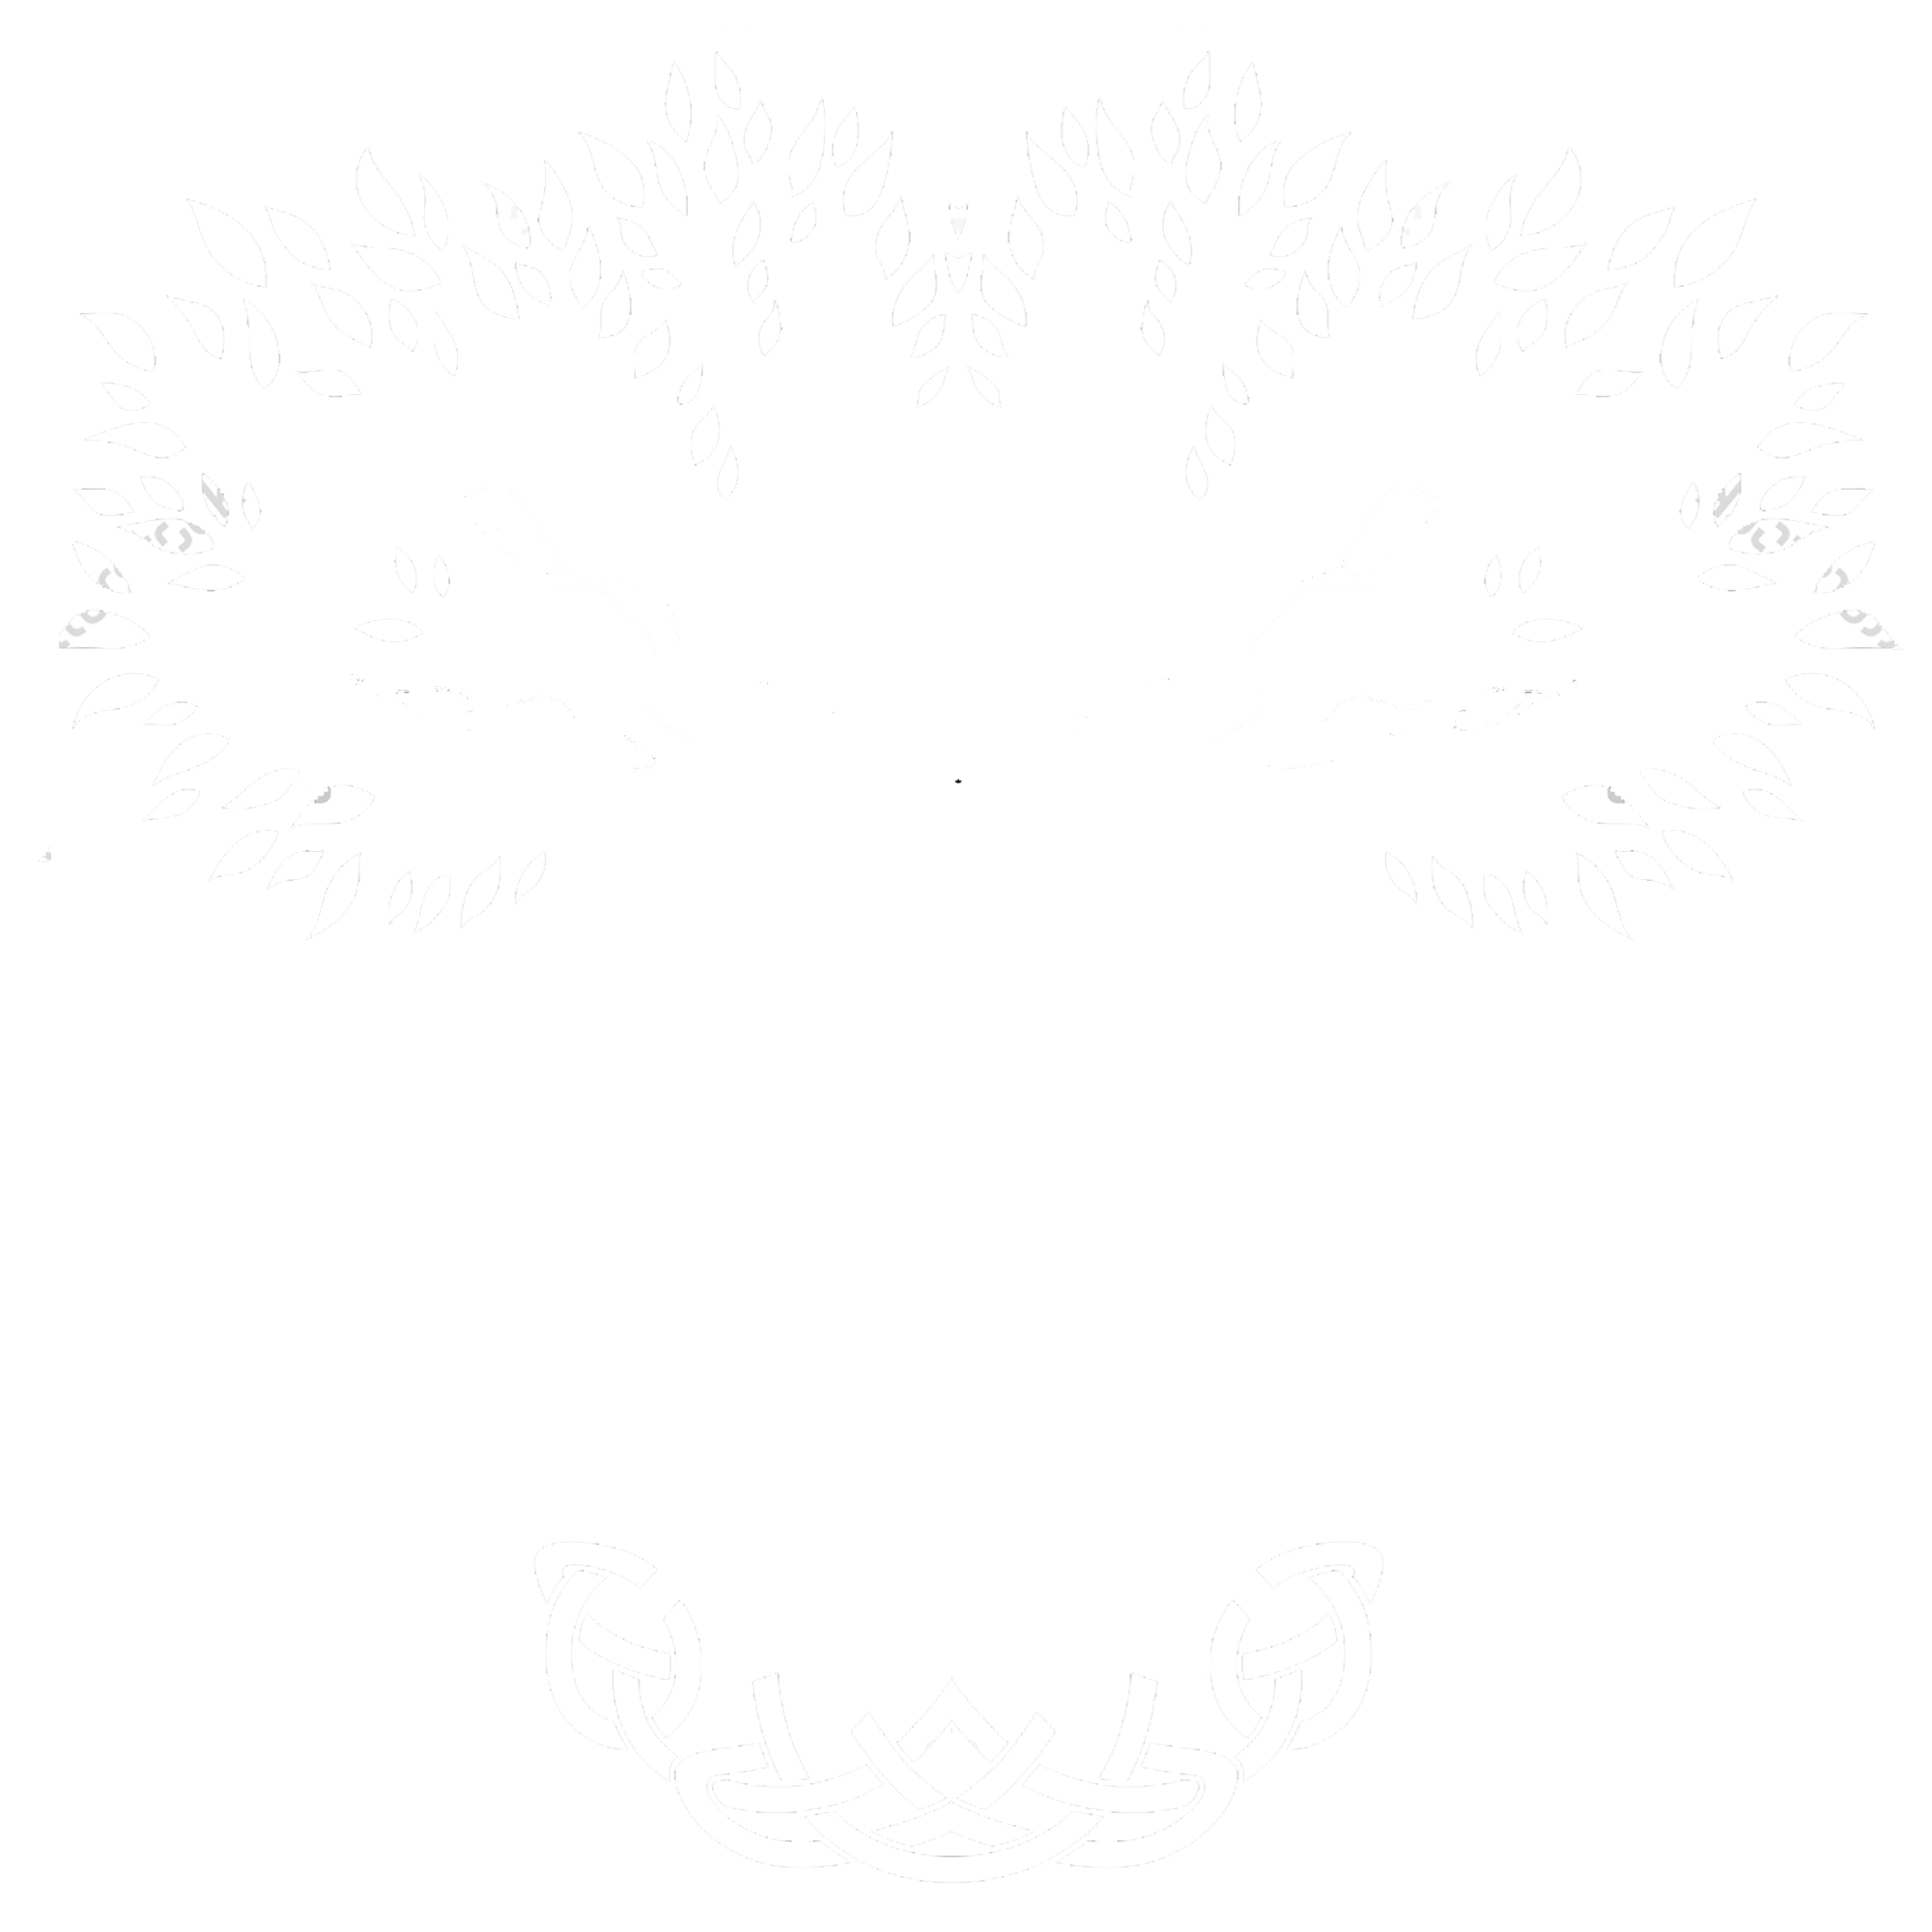 Goodwin Land Sales